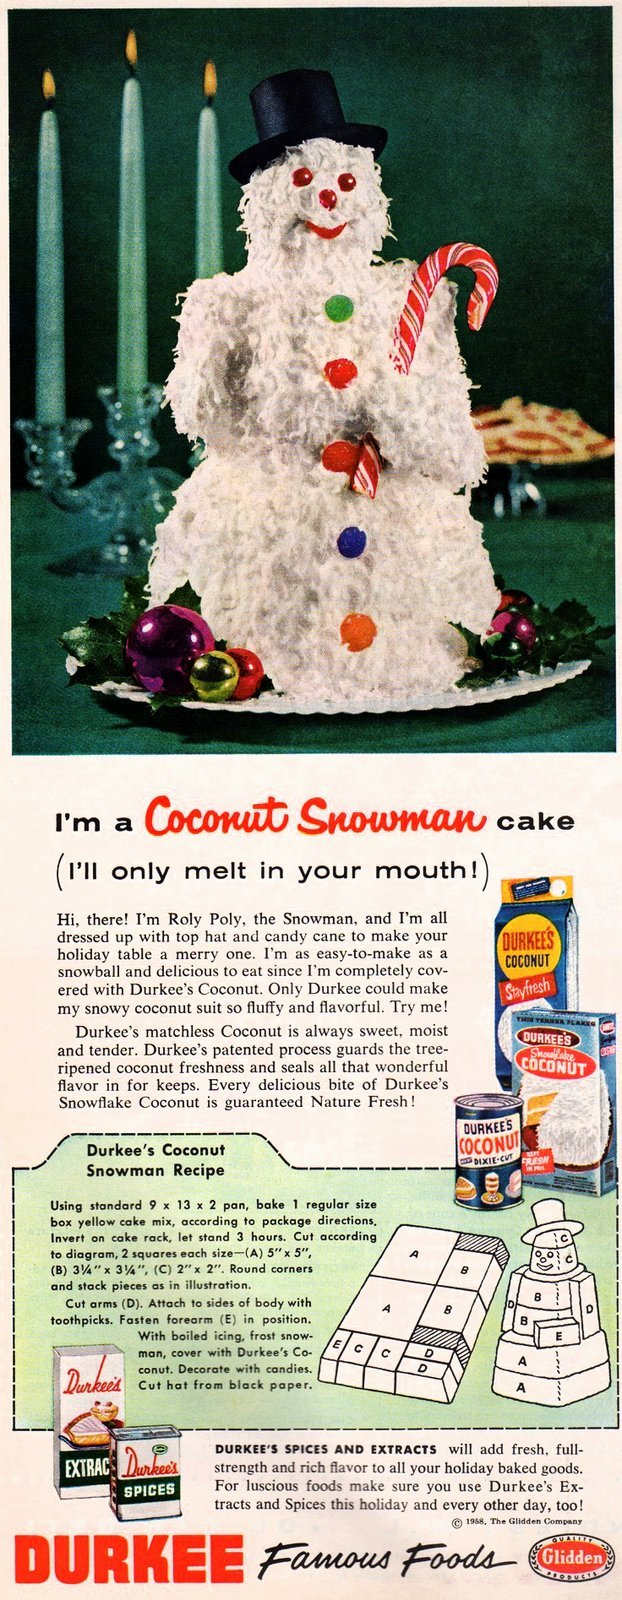 Vintage Coconut snowman cake recipe from 1958